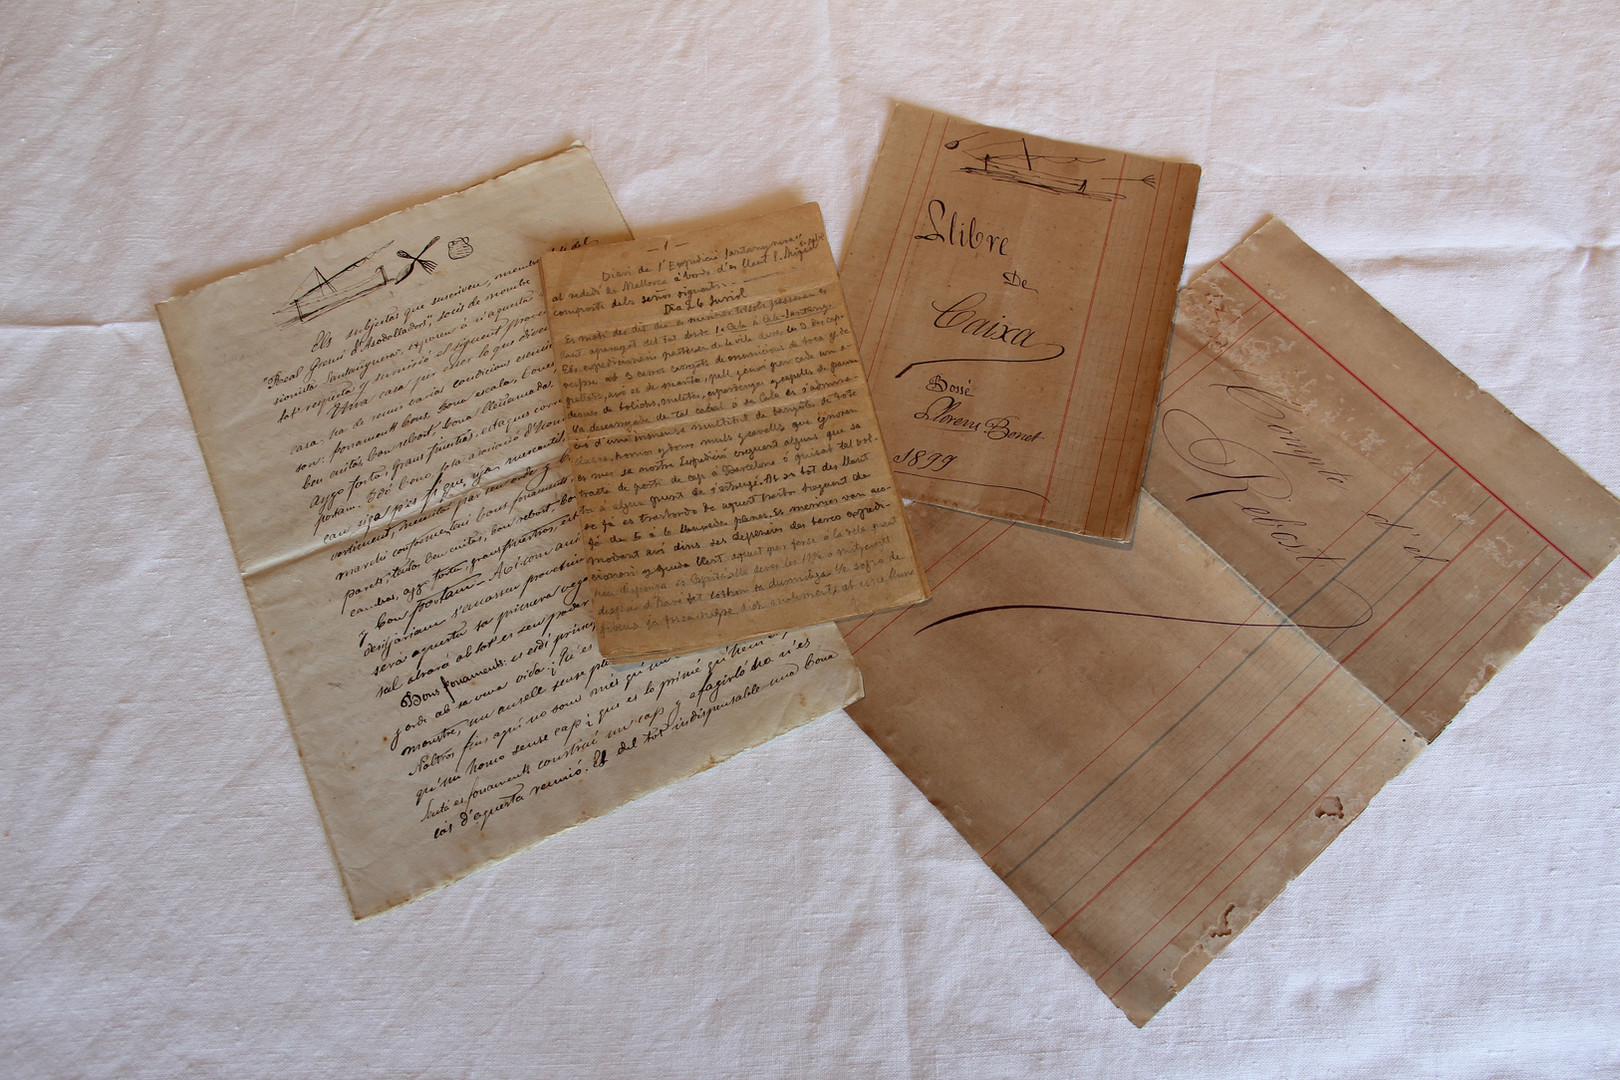 Set of handwritten documents with information about how the expedition was planned and details of how it developed.